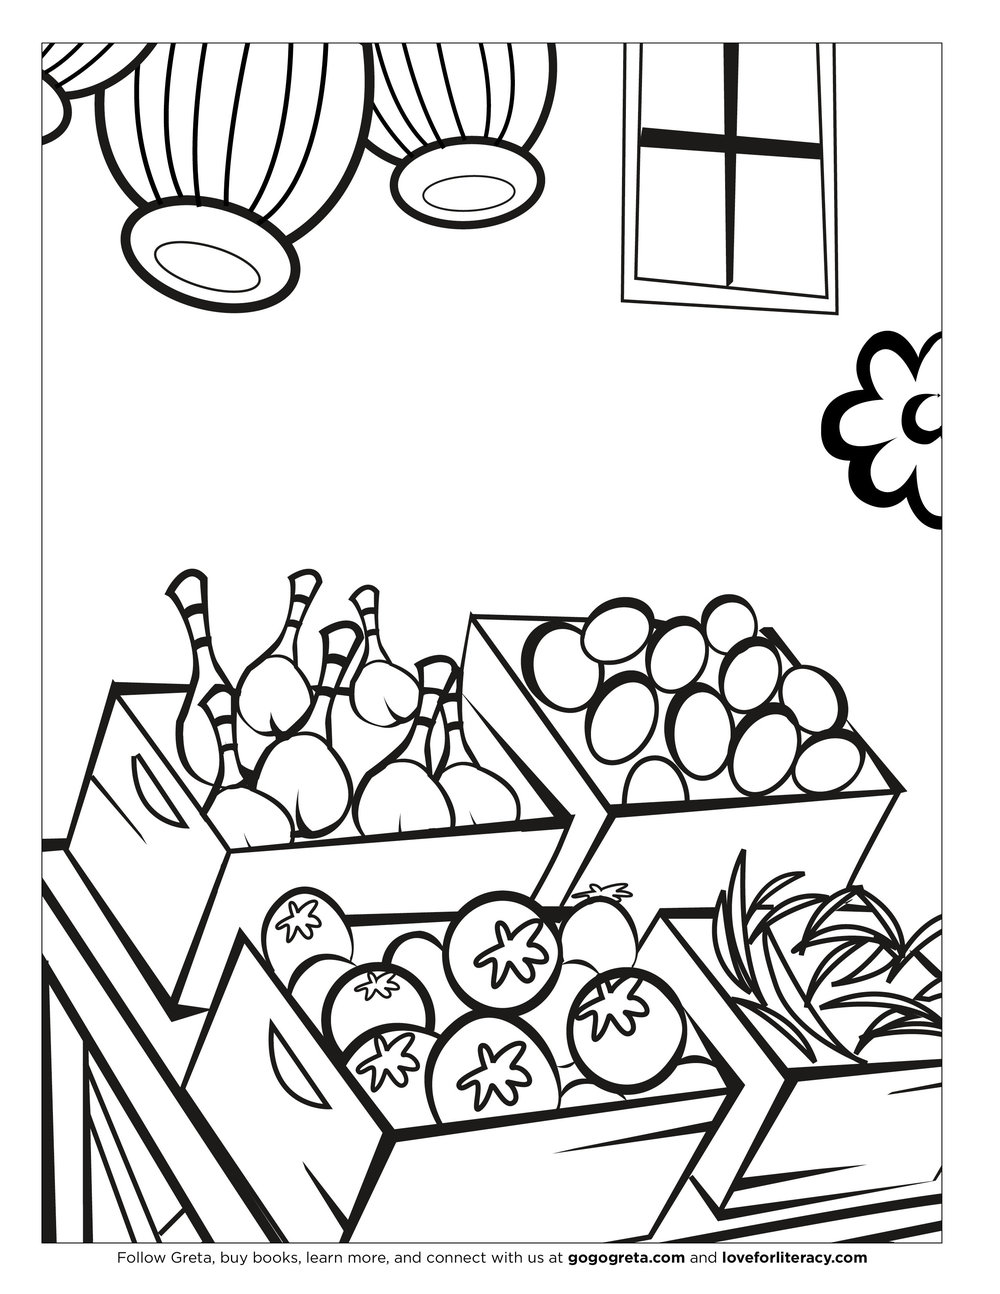 GoGoGreta_Coloring Pages_04061711.jpg